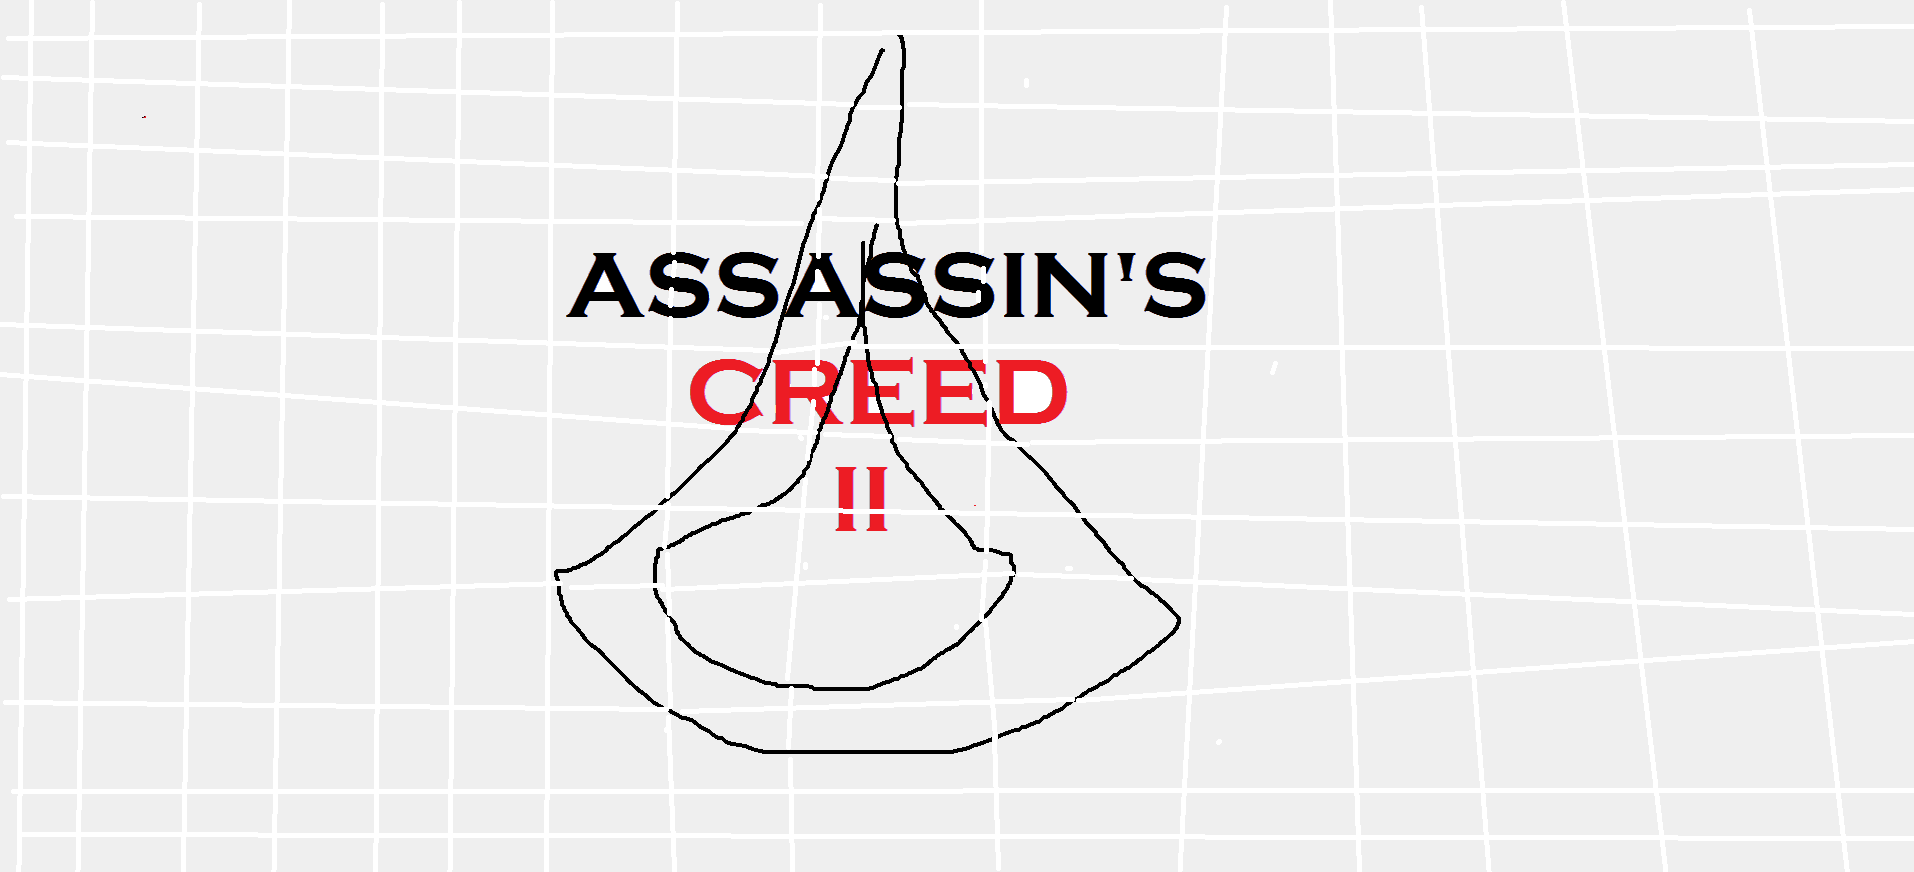 assassin's creed II-ms paint